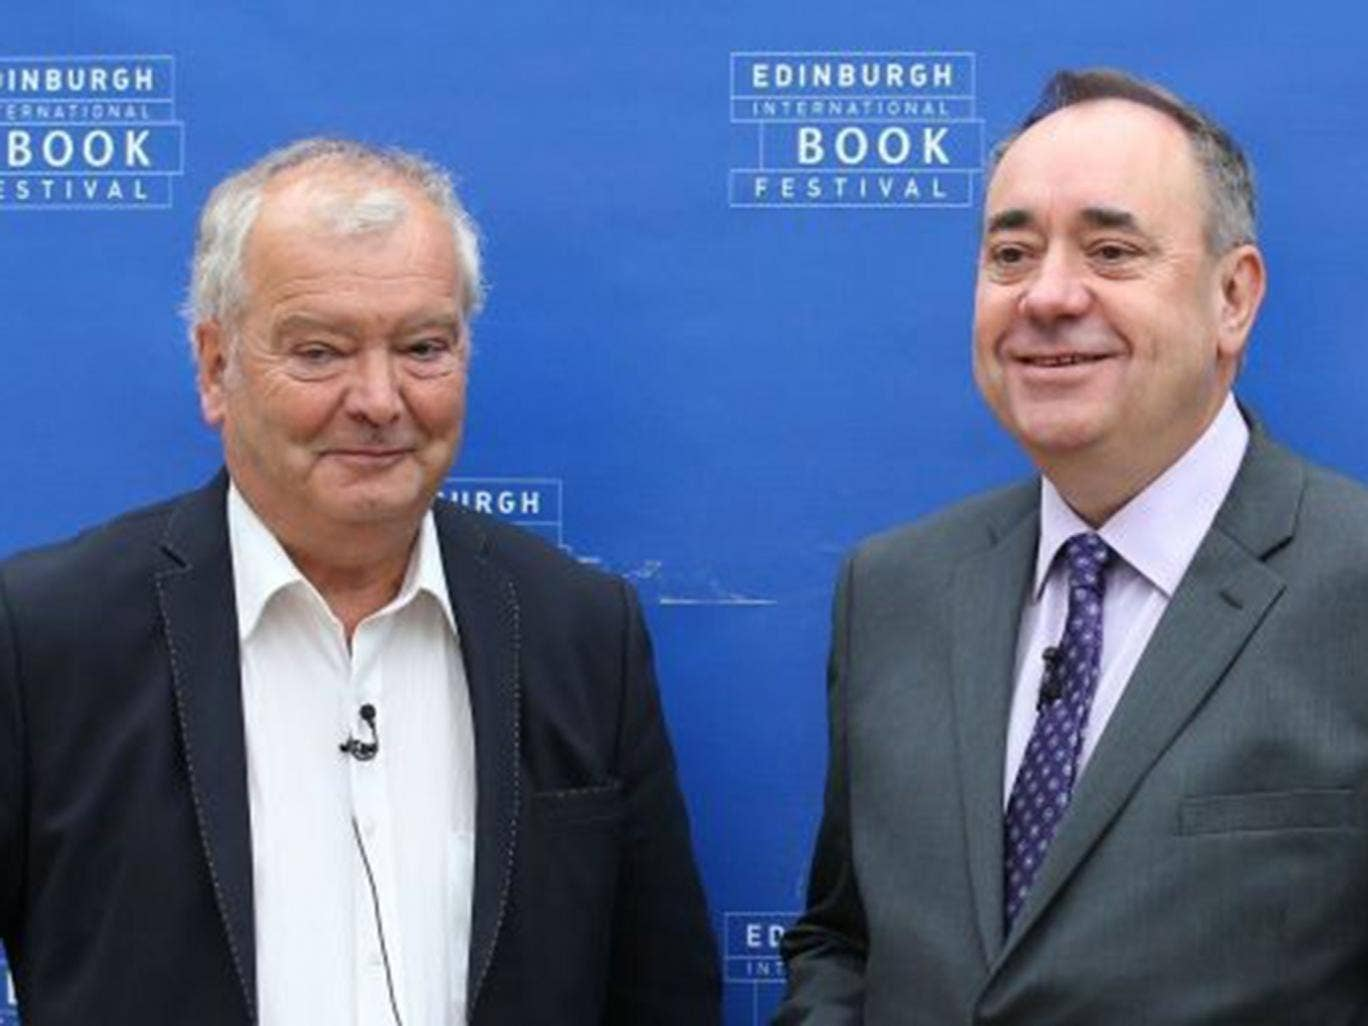 The historian Sir Tom Devine with Alex Salmond at the Edinburgh International Book Festival yesterday. The First Minister said an independent Scotland would continue to use the pound